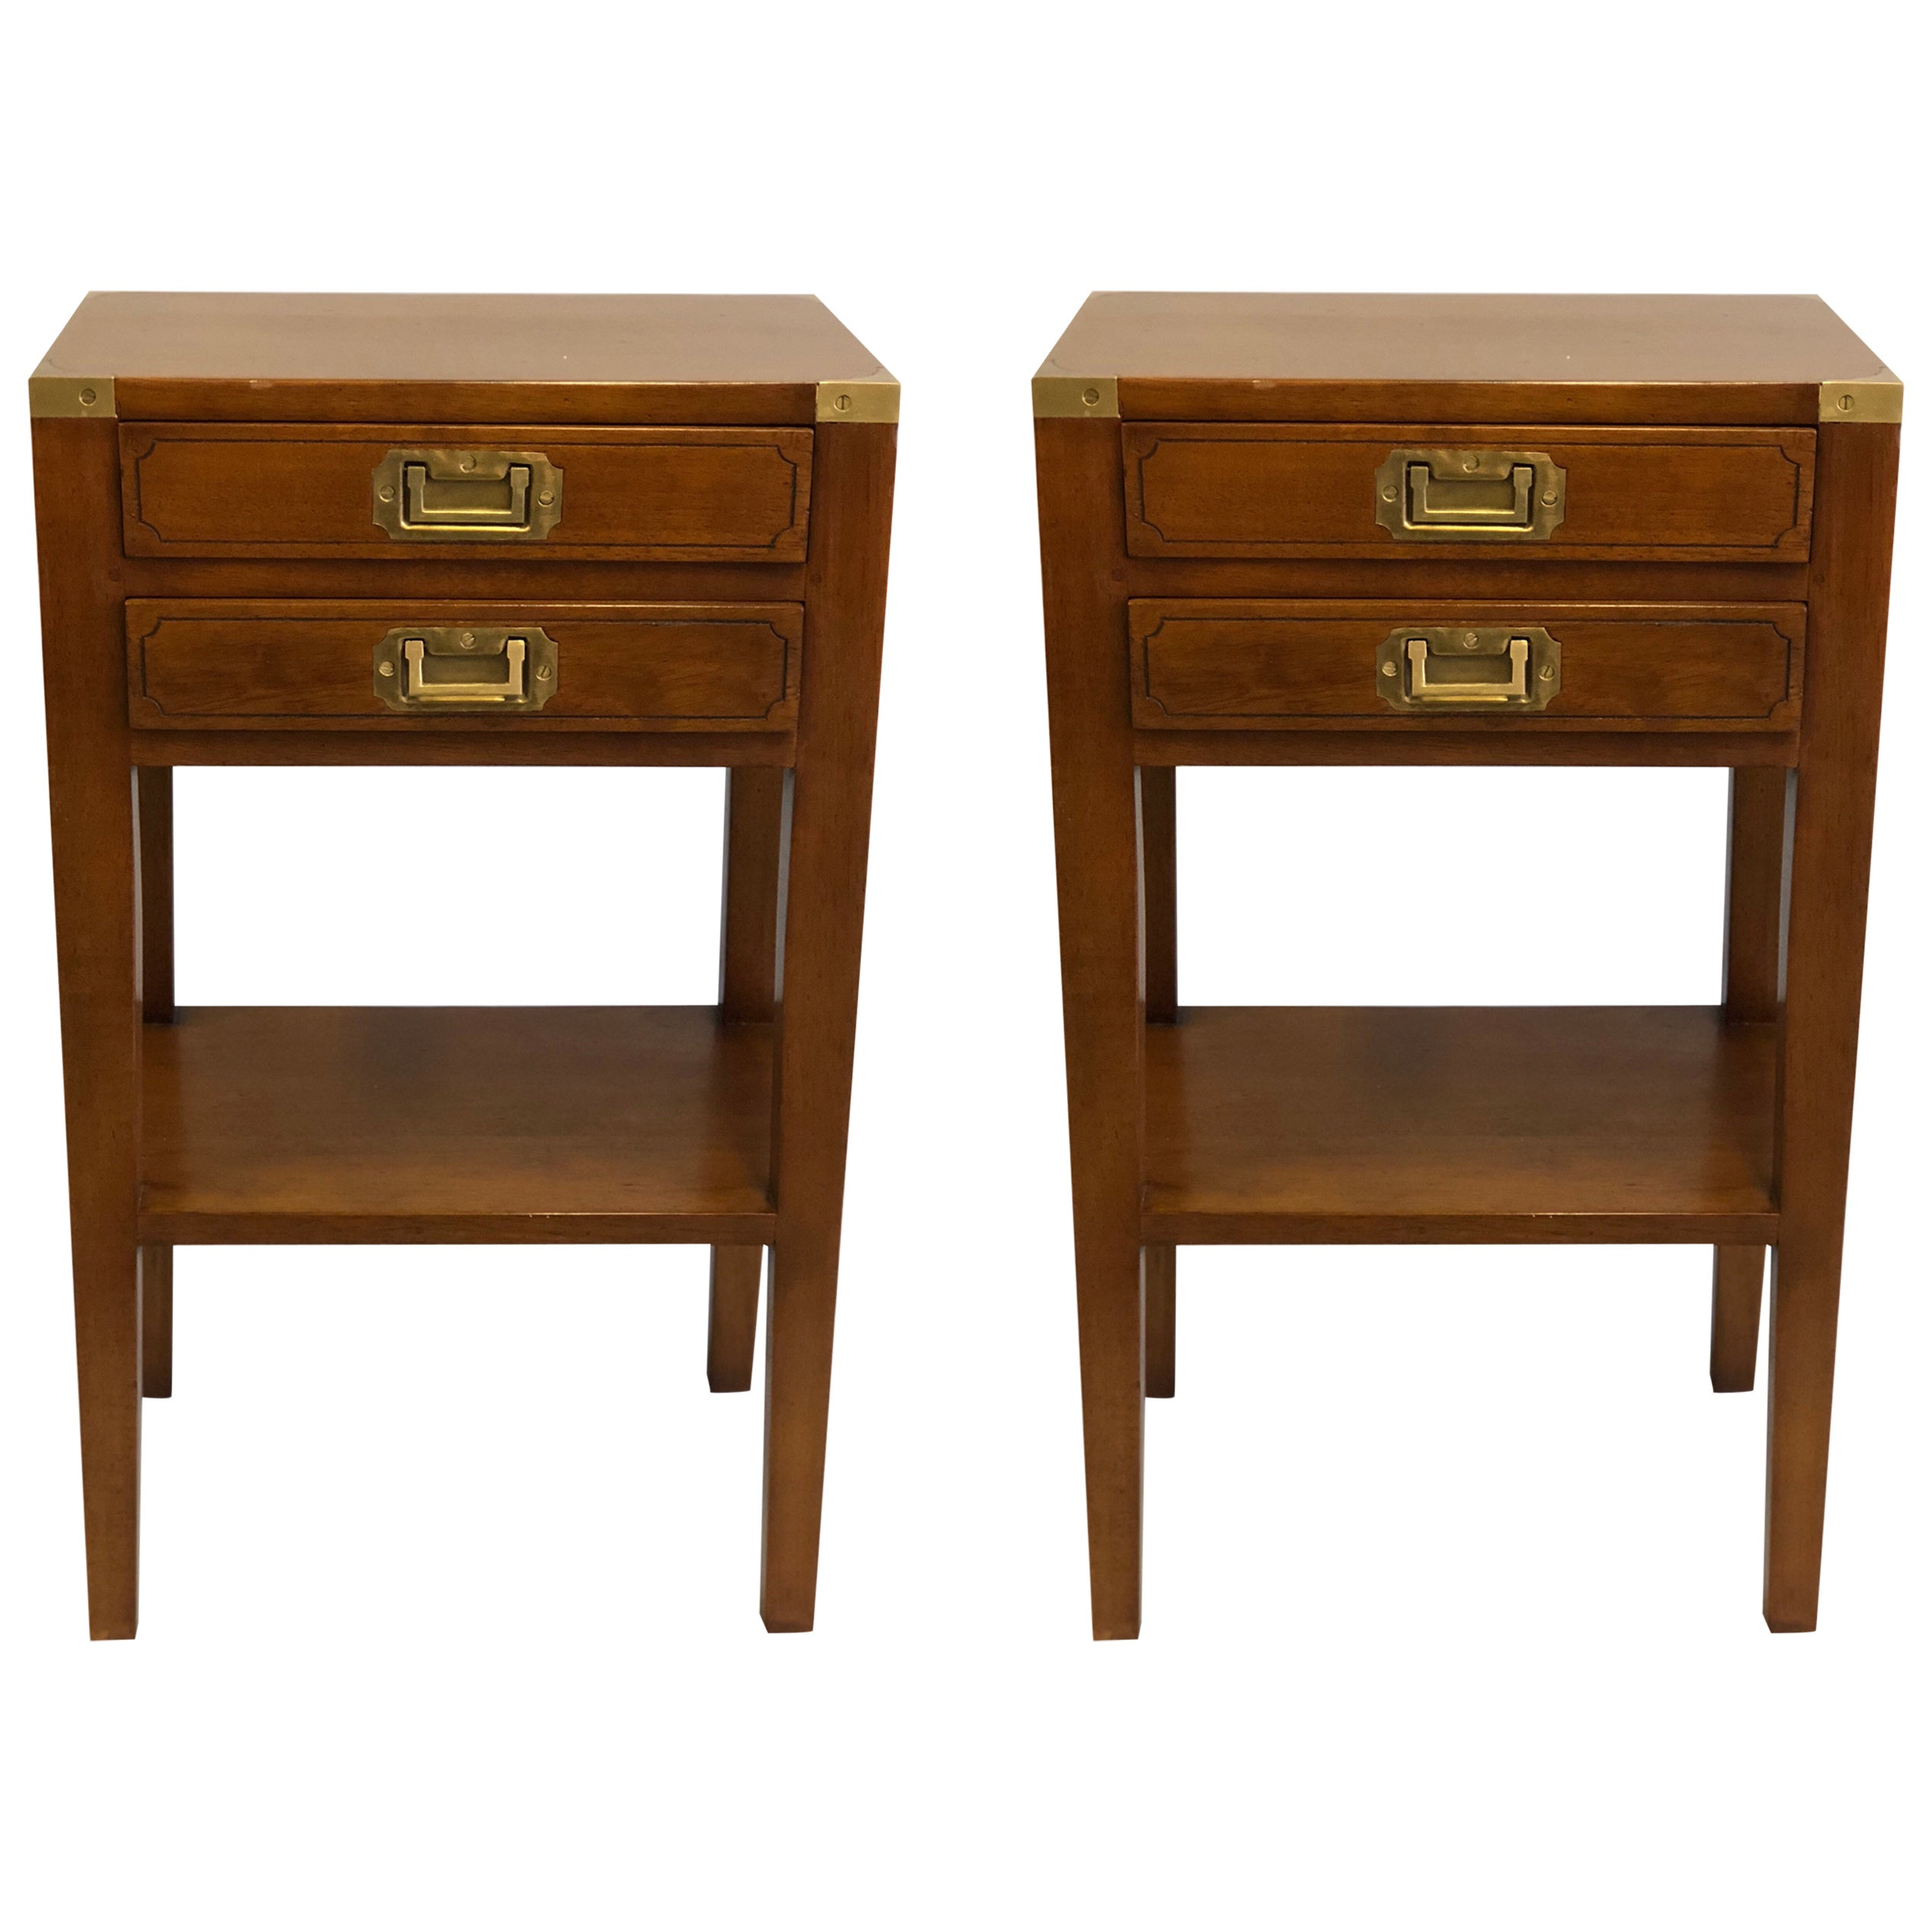 Pair French Mid-Century Modern Style Marine Nightstands / End Tables